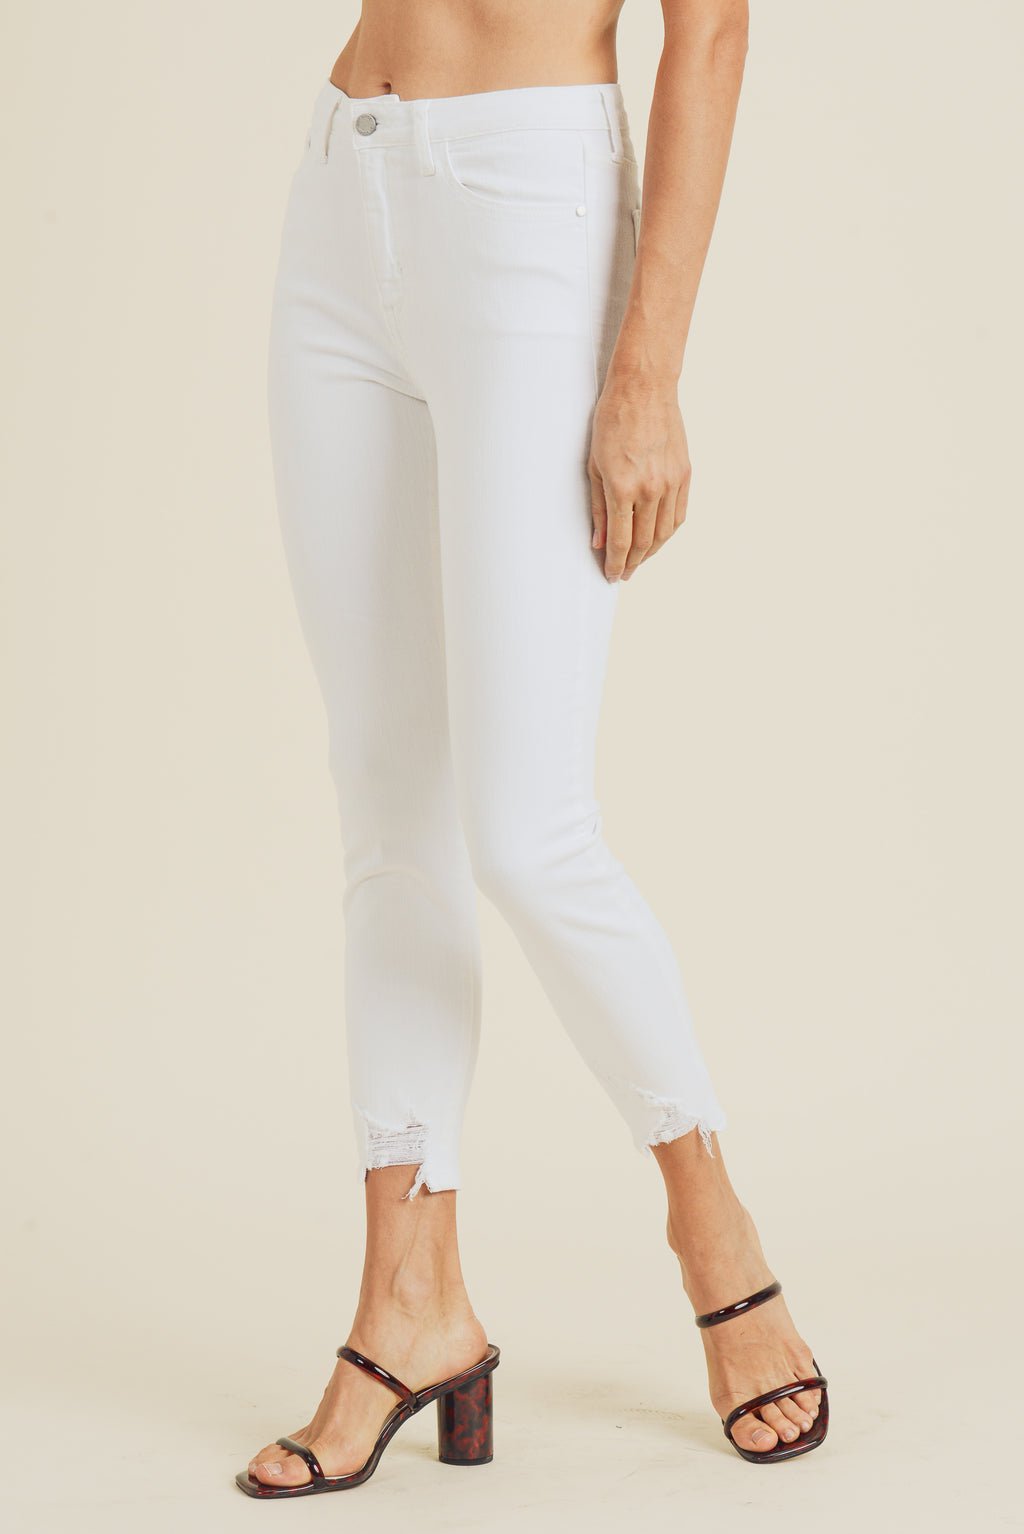 Tobi Denim in White